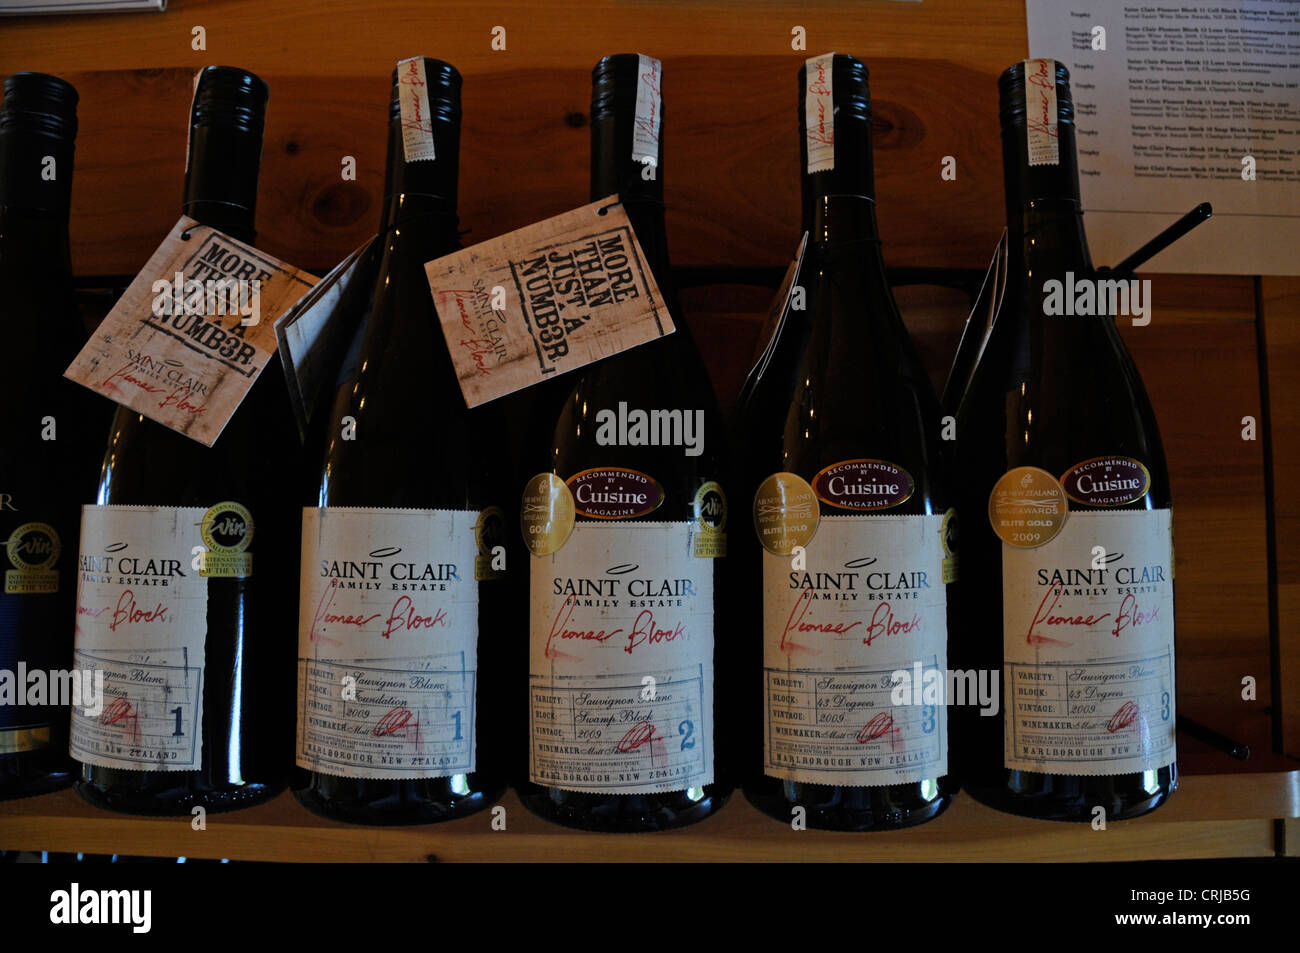 A small selection of award wining wines at St. Clair winery in New Renwick Road, Marlborough New Zealand - Stock Image